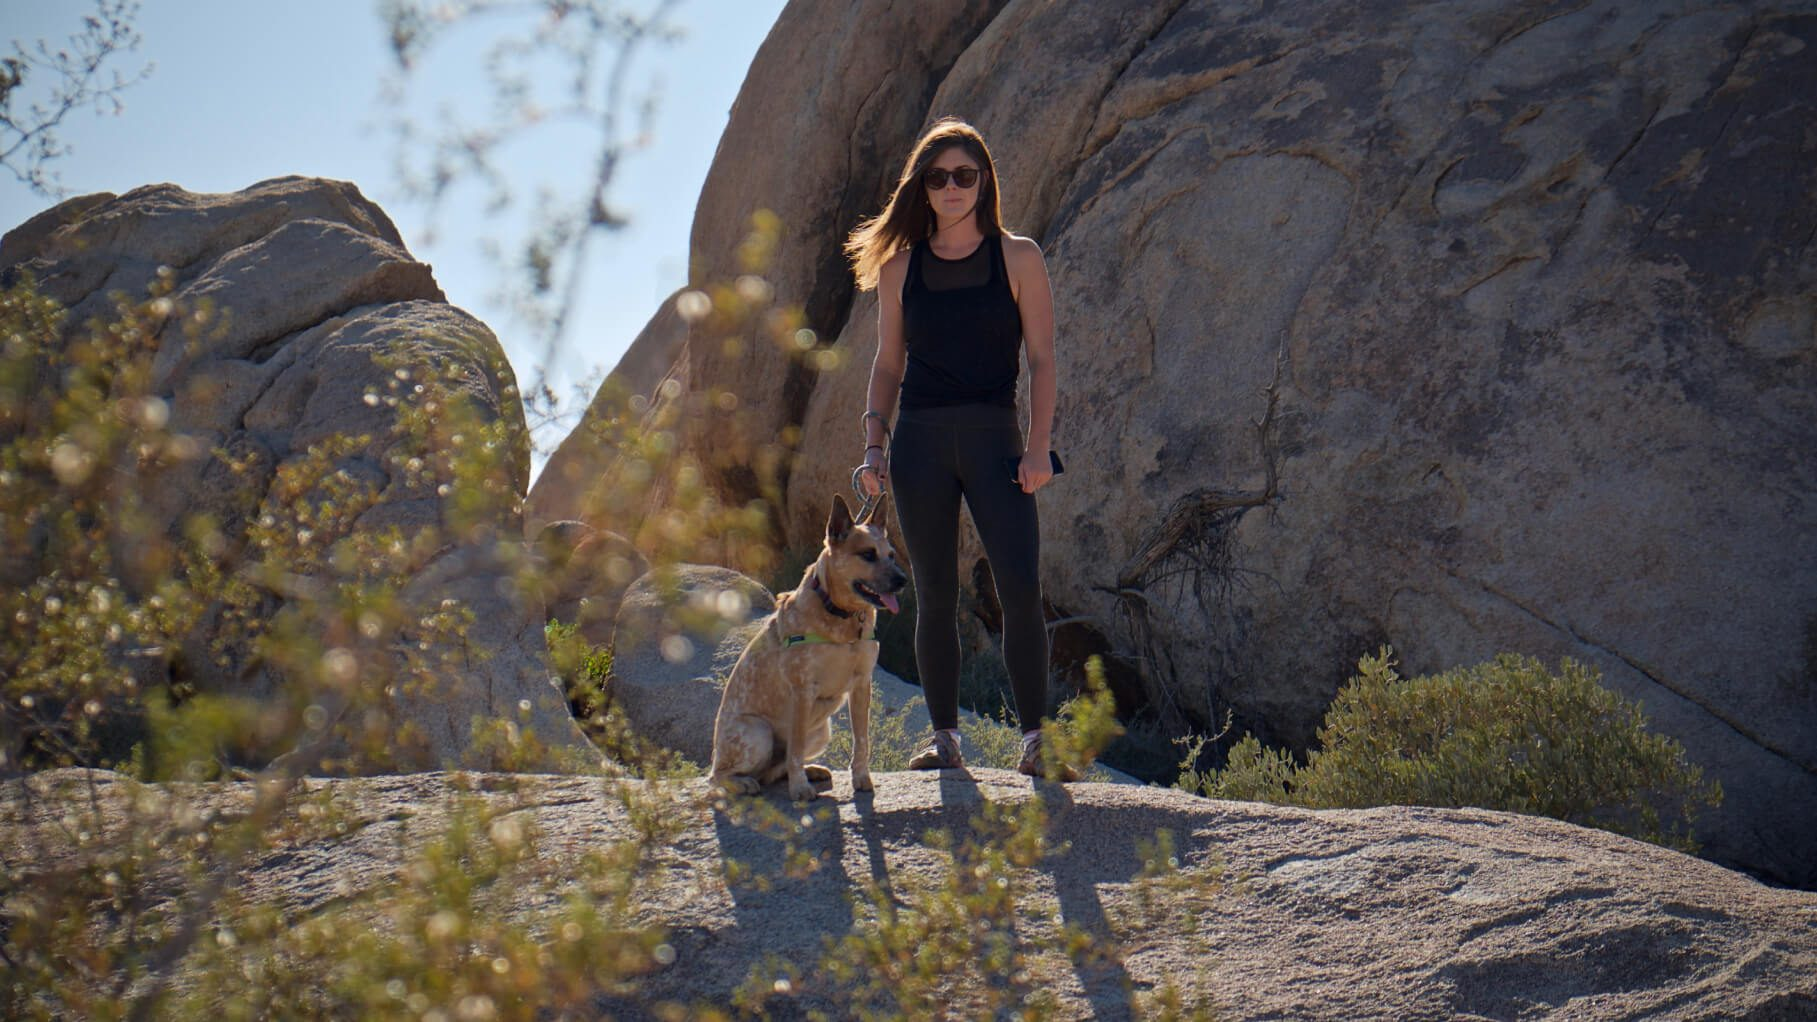 woman walking in the mountains with a dog